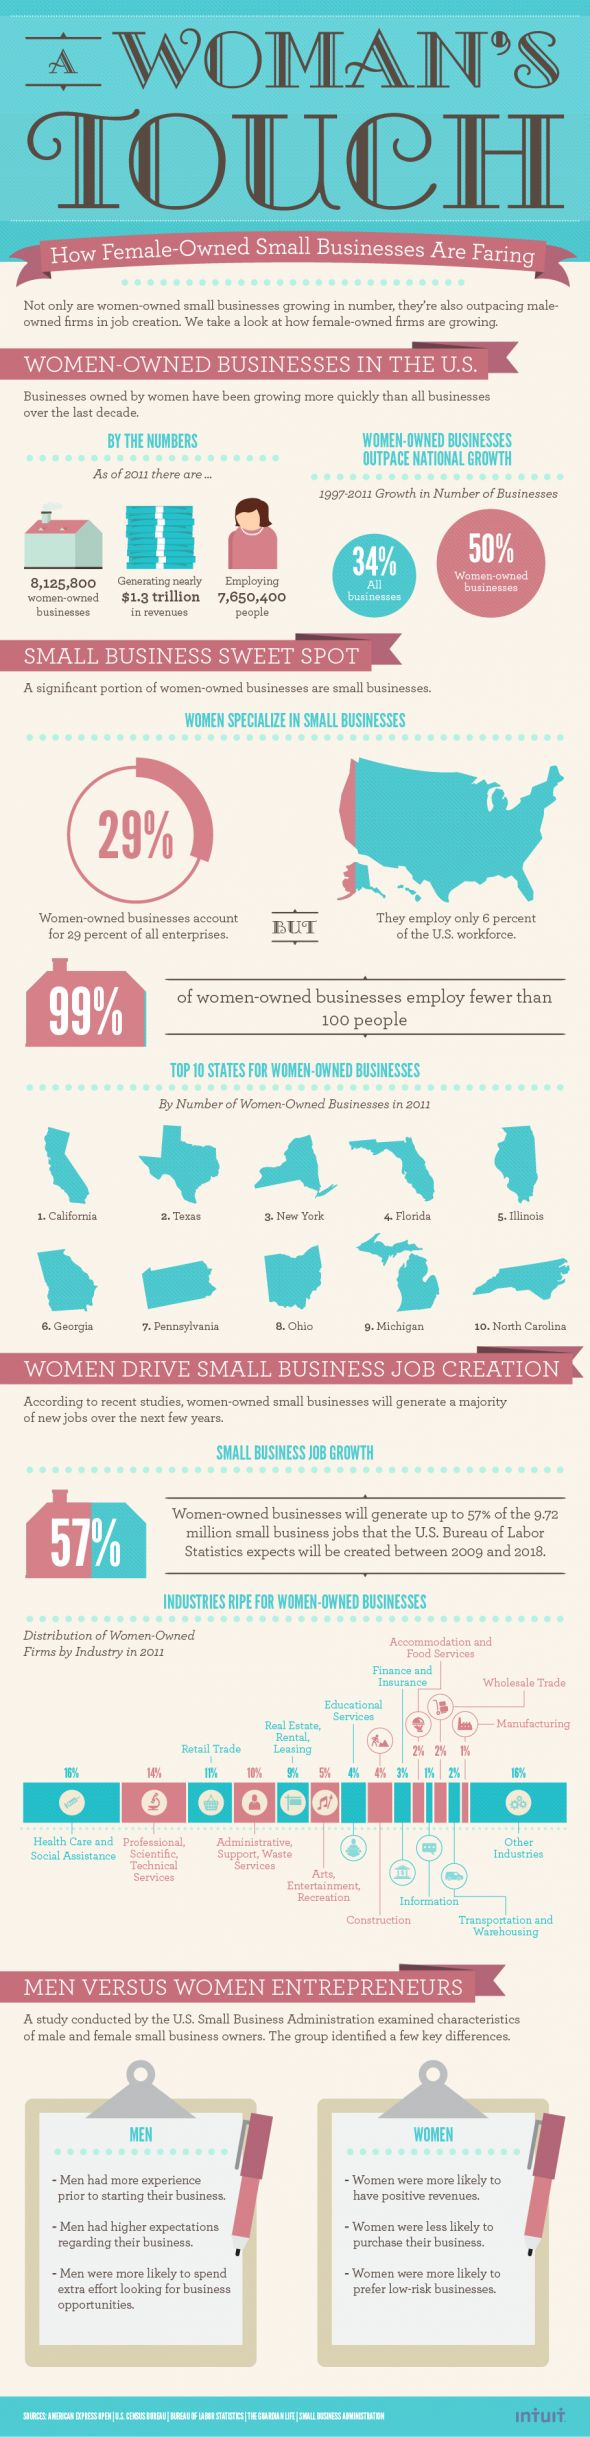 A Woman's Touch: How Female-Owned Small Businesses Are Faring